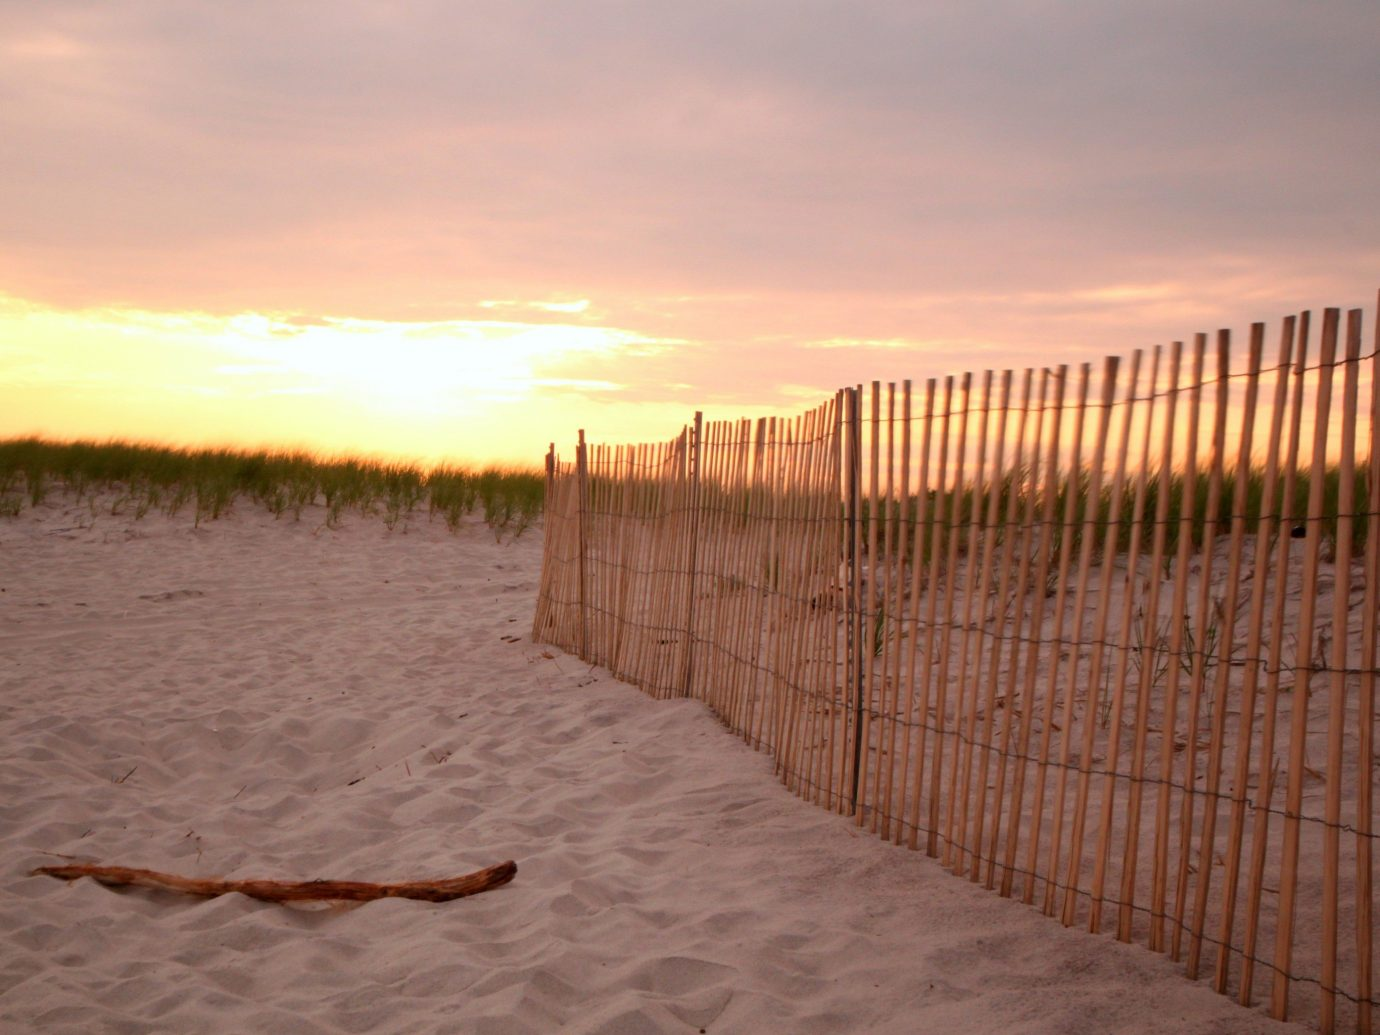 Trip Ideas sky outdoor Sunset morning Beach sunlight Sea wood walkway sand Fence outdoor structure sunrise